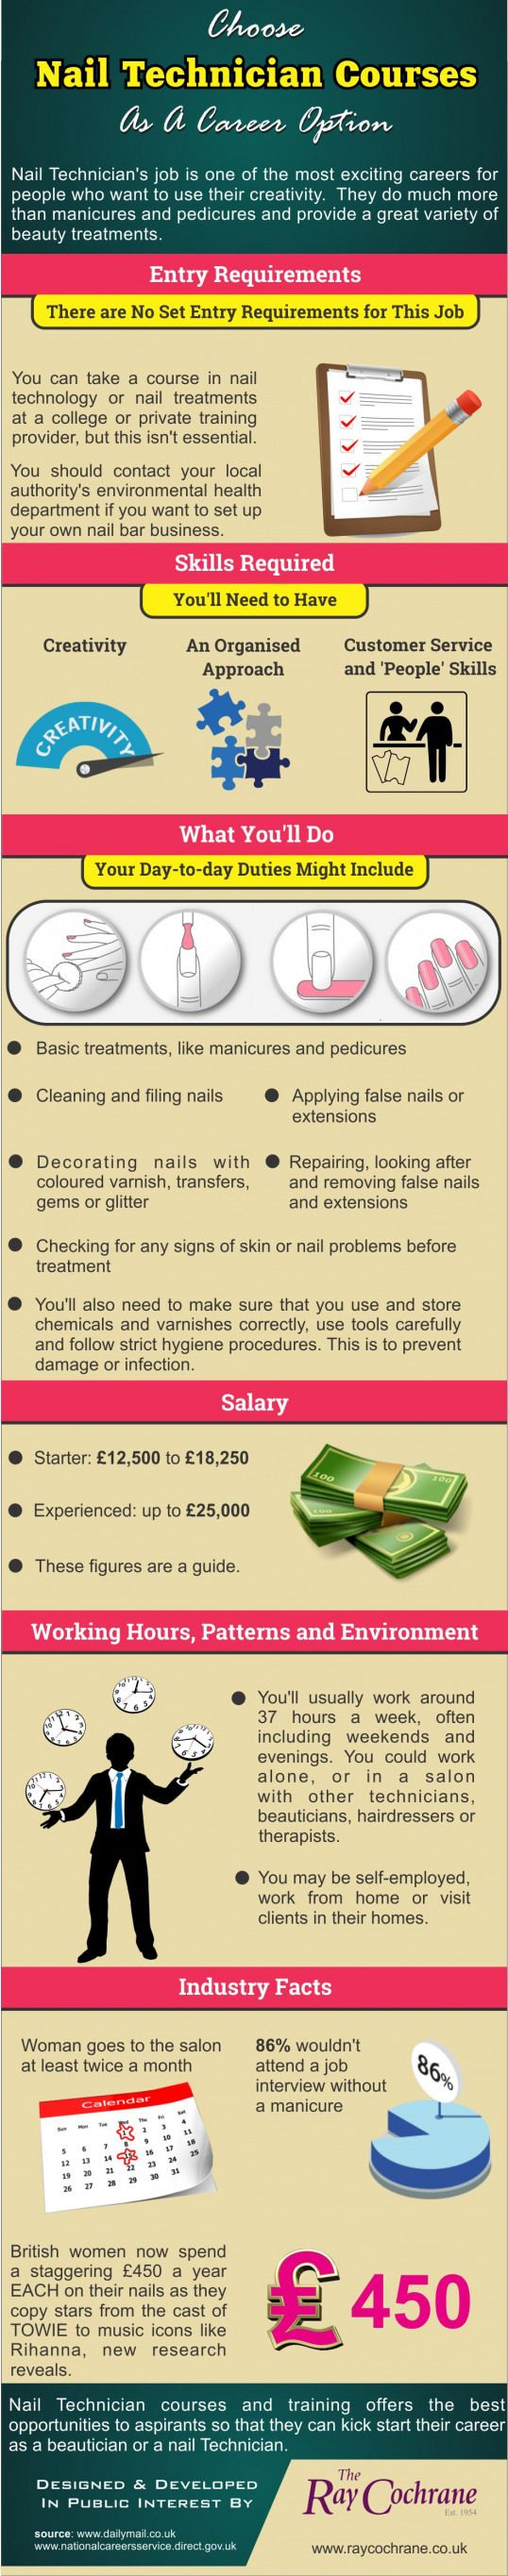 Nail technicians job is one of the most exciting careers